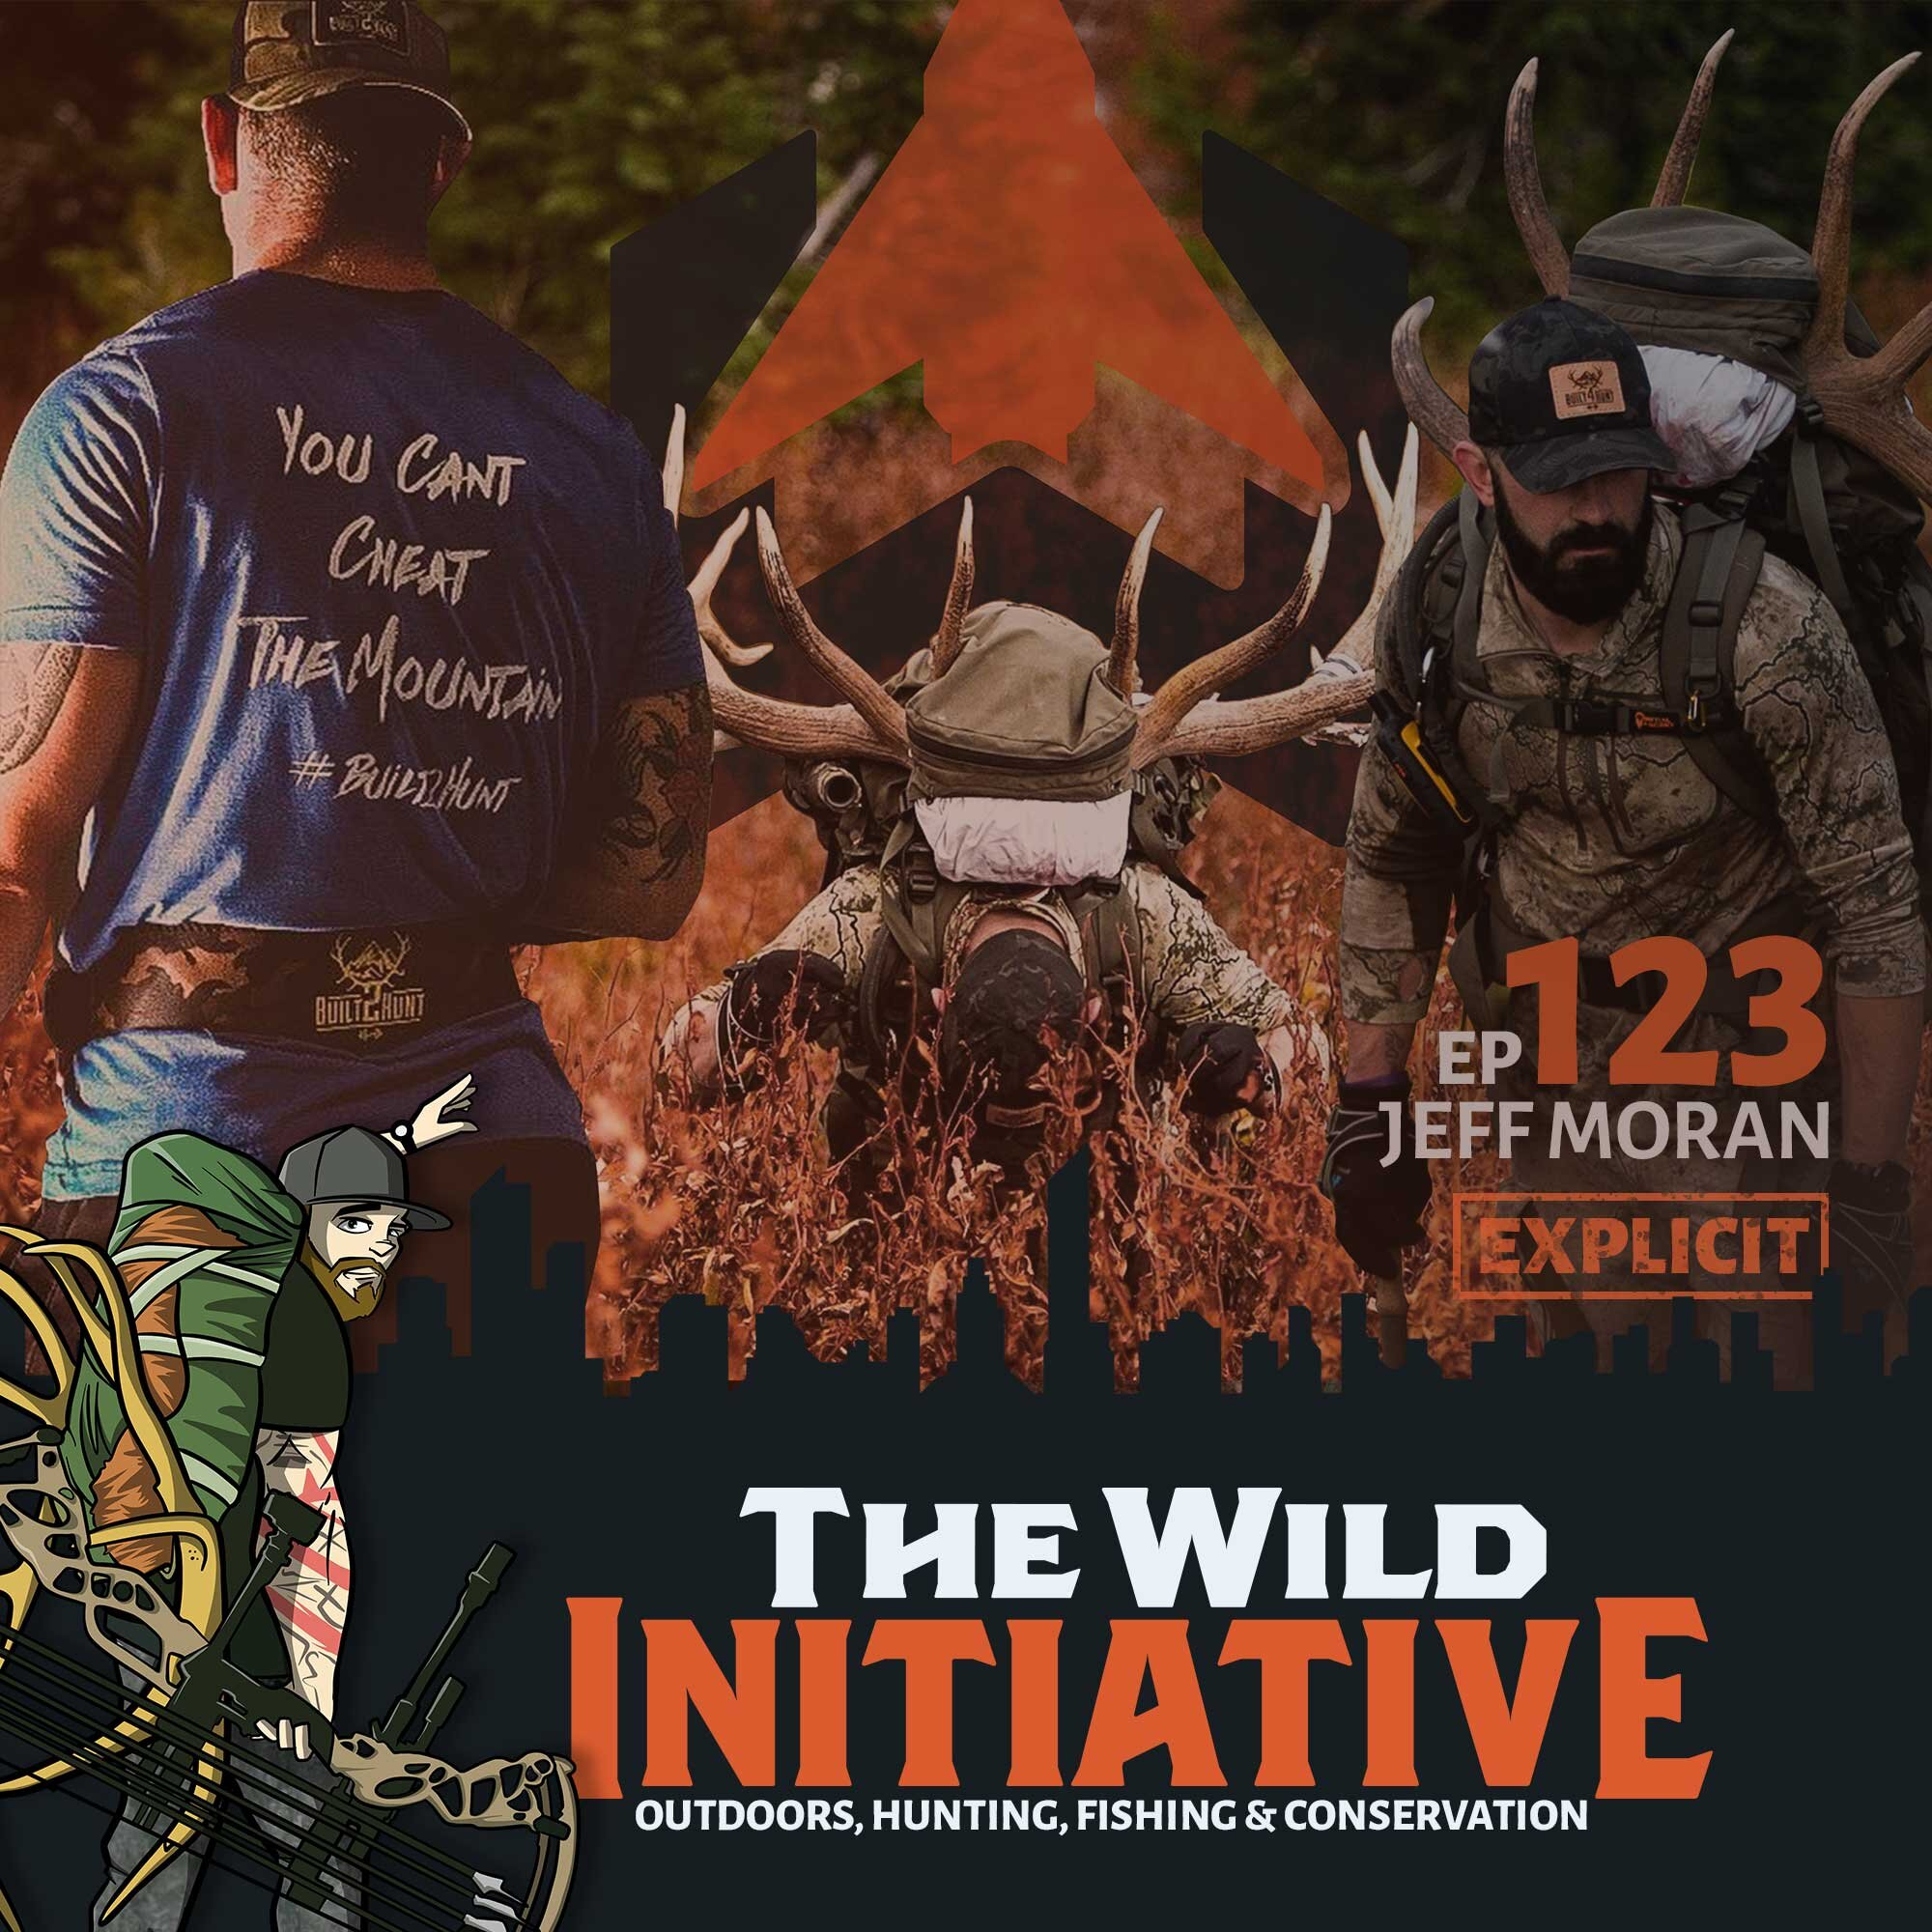 Ep 123 Jeff Moran - The Wild Initiative - Outdoors, Hunting, Fishing & Conservation